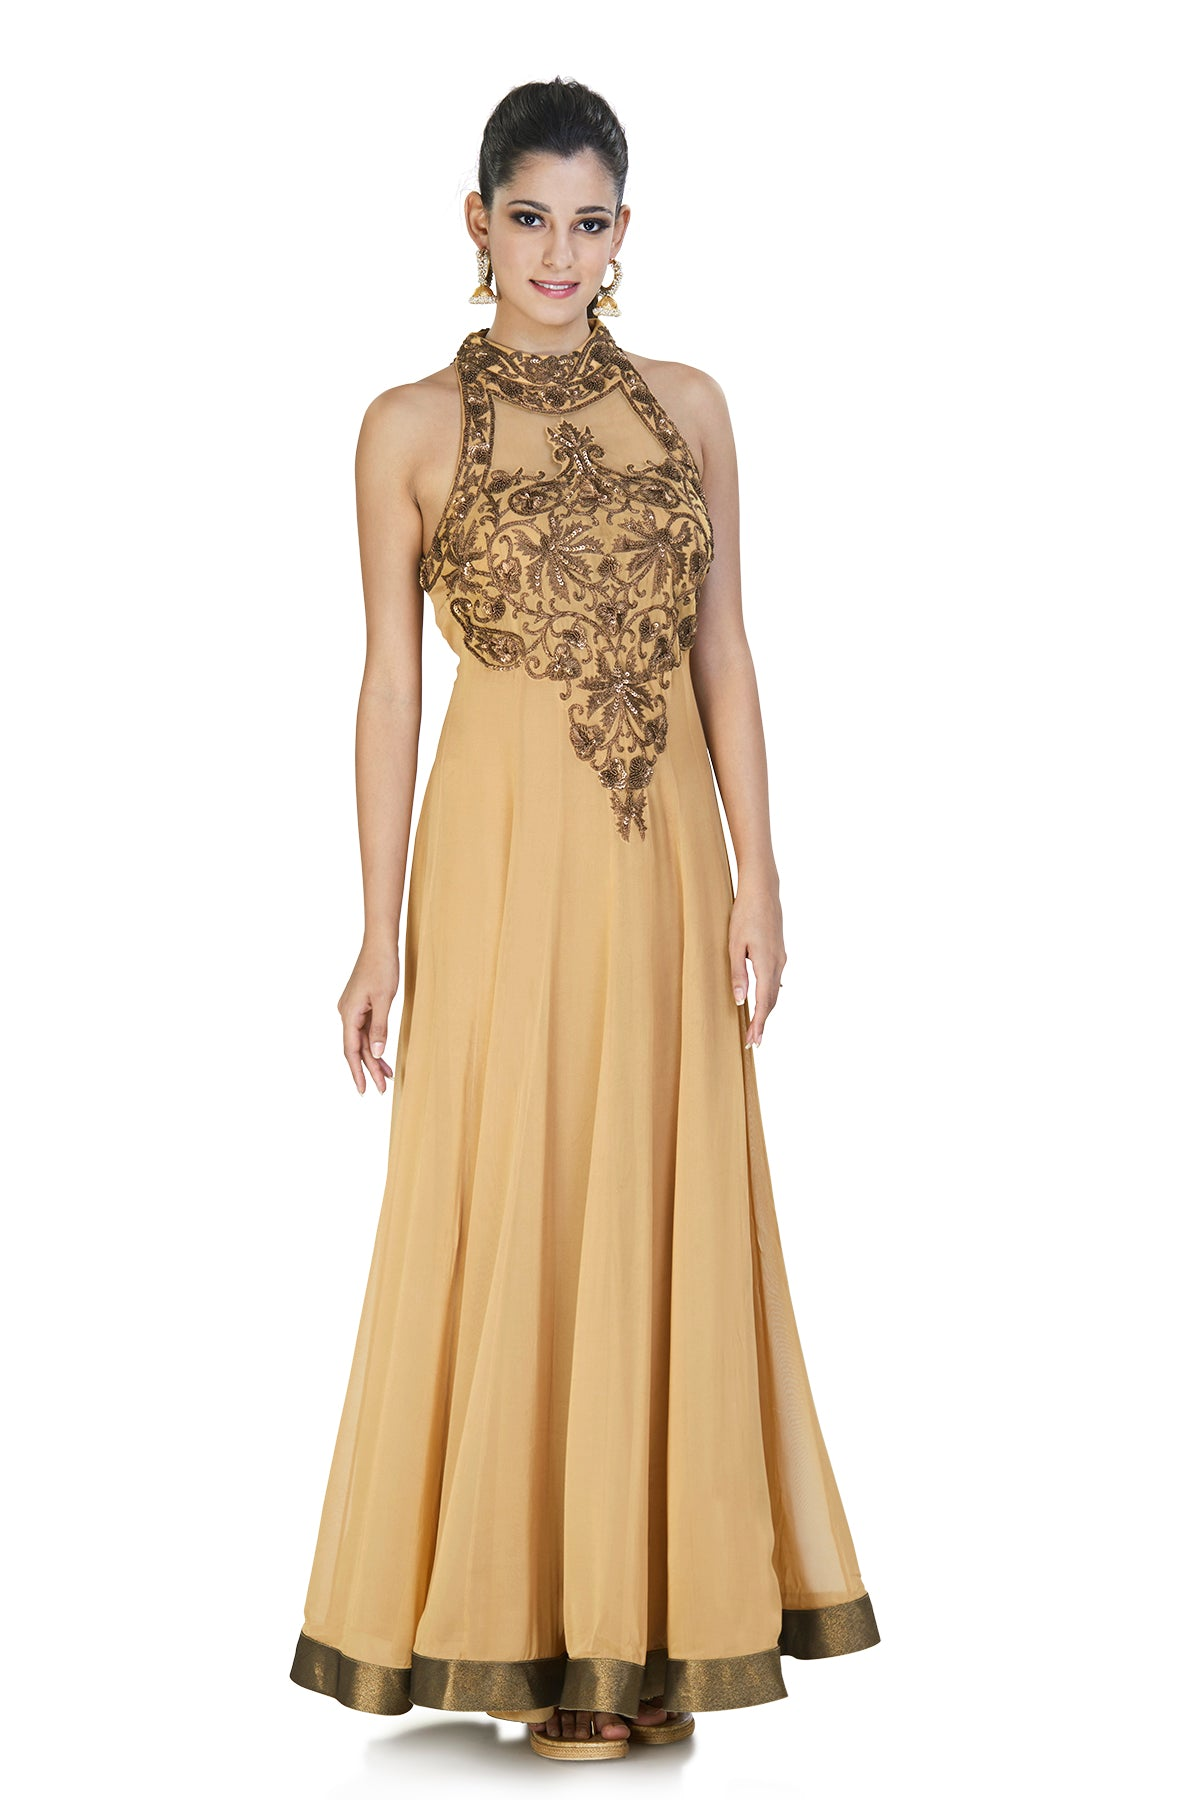 Guilded with gold and finished with grace, this gold gown is crafted with bronze work on the neck panel and a striking bronze trim.